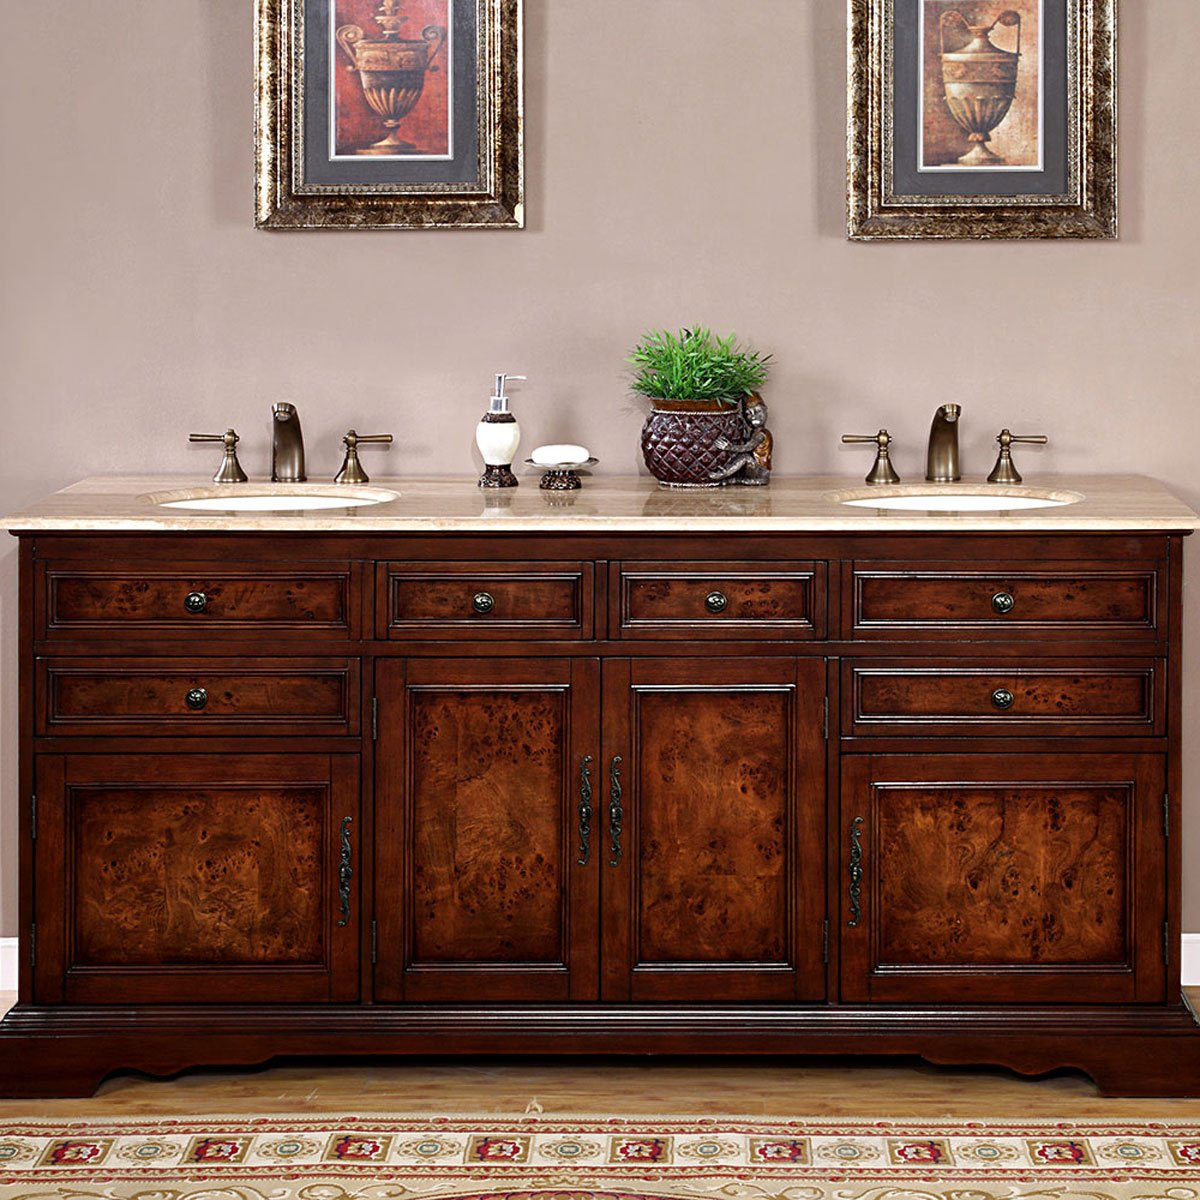 72'' Bathroom Furniture Travertine Top Double Sink Vanity Cabinet 716T